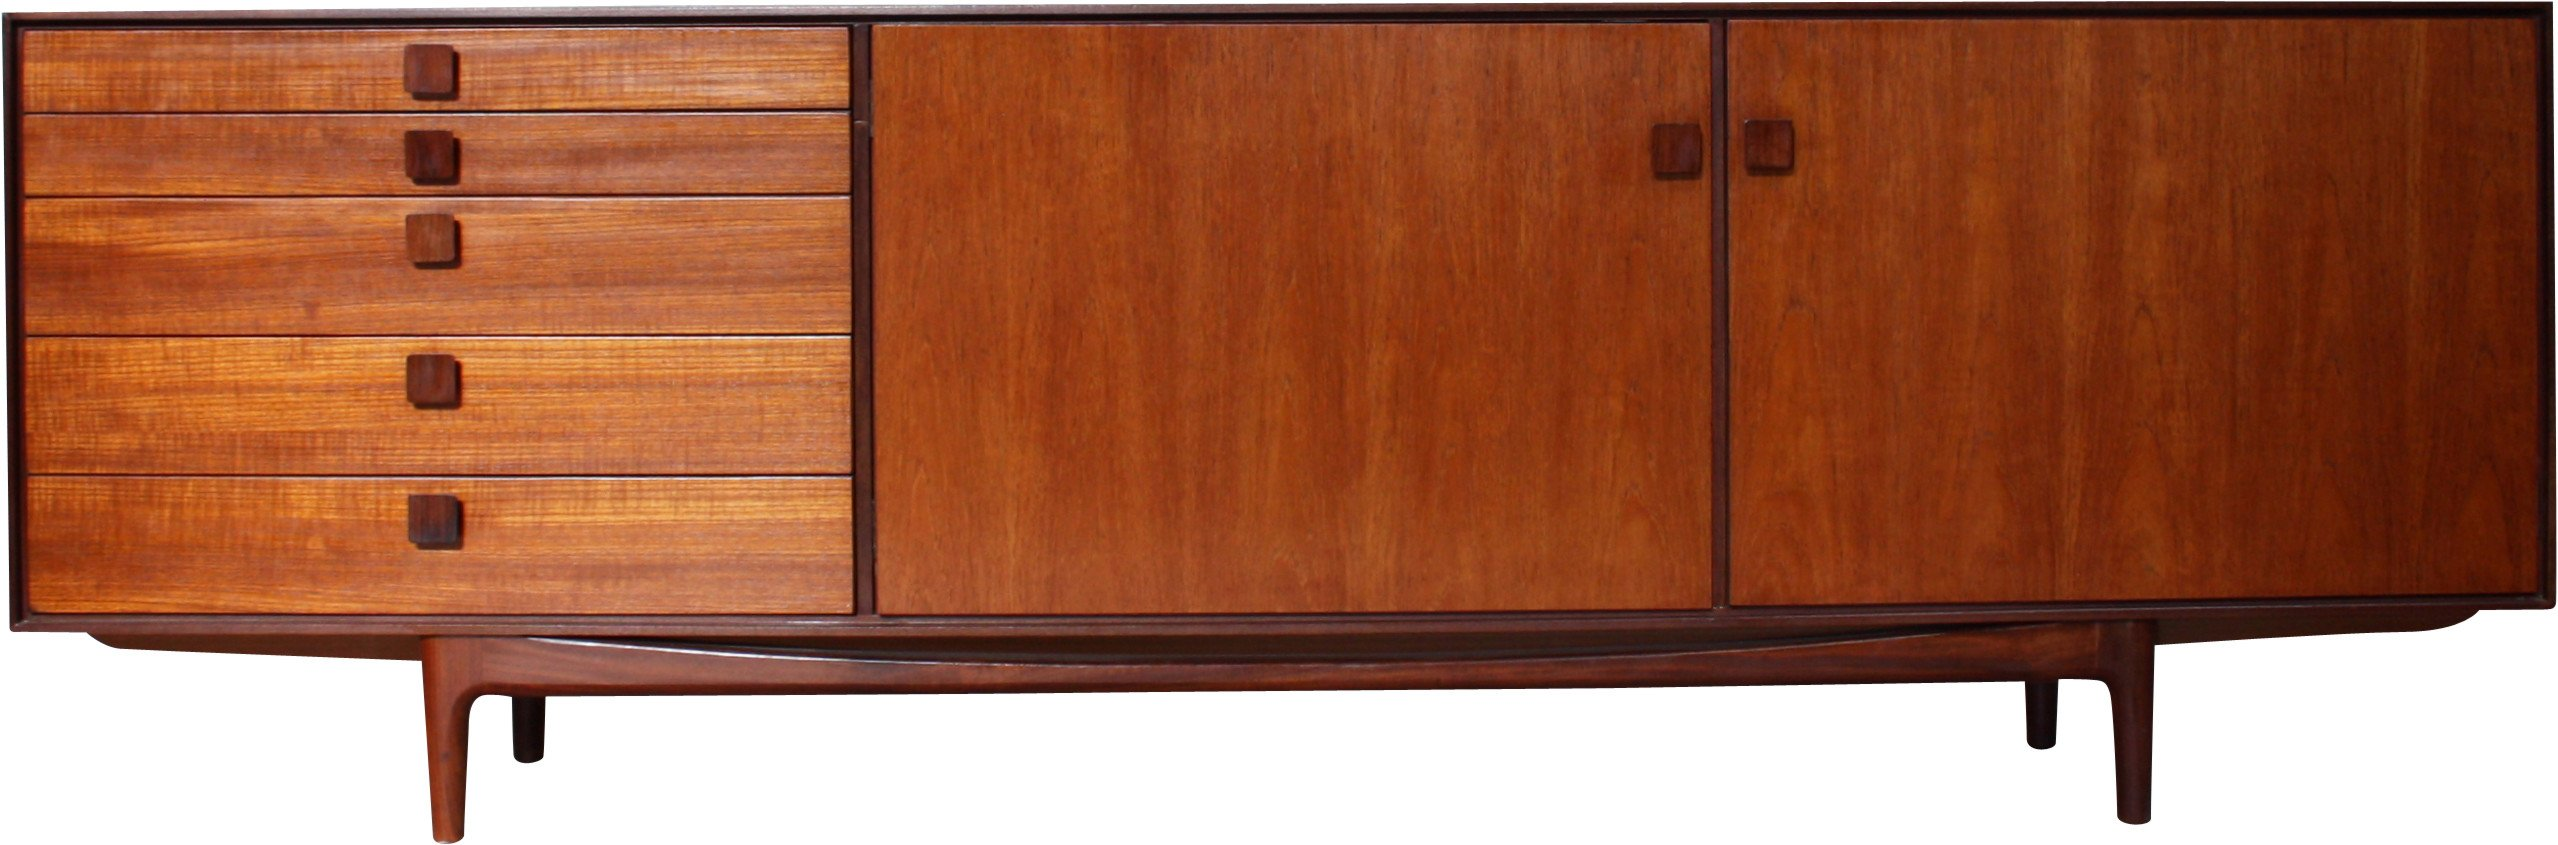 Teak Sideboard by I. Kofod-Larsen for G-Plan, United Kingdom, 1960s